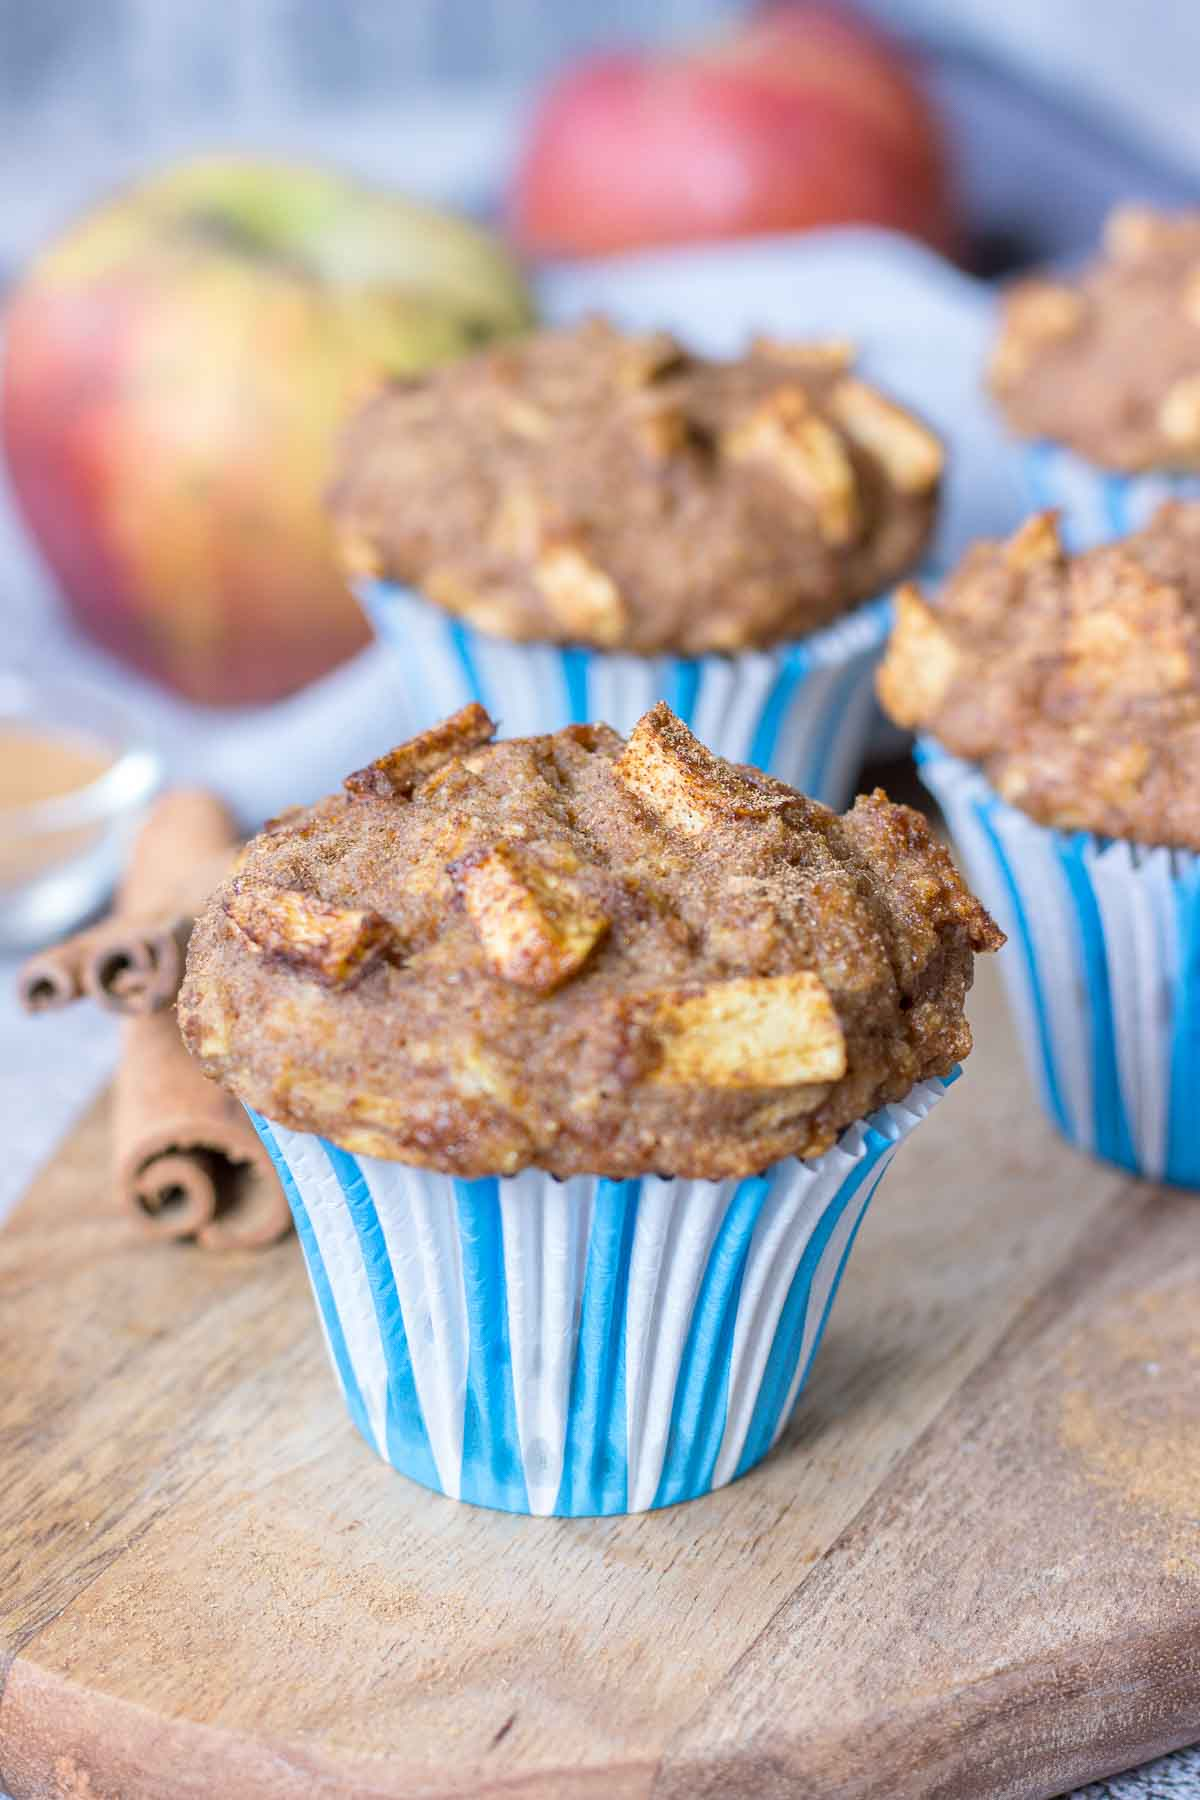 Apple Cinnamon Muffins served on a wooden plate